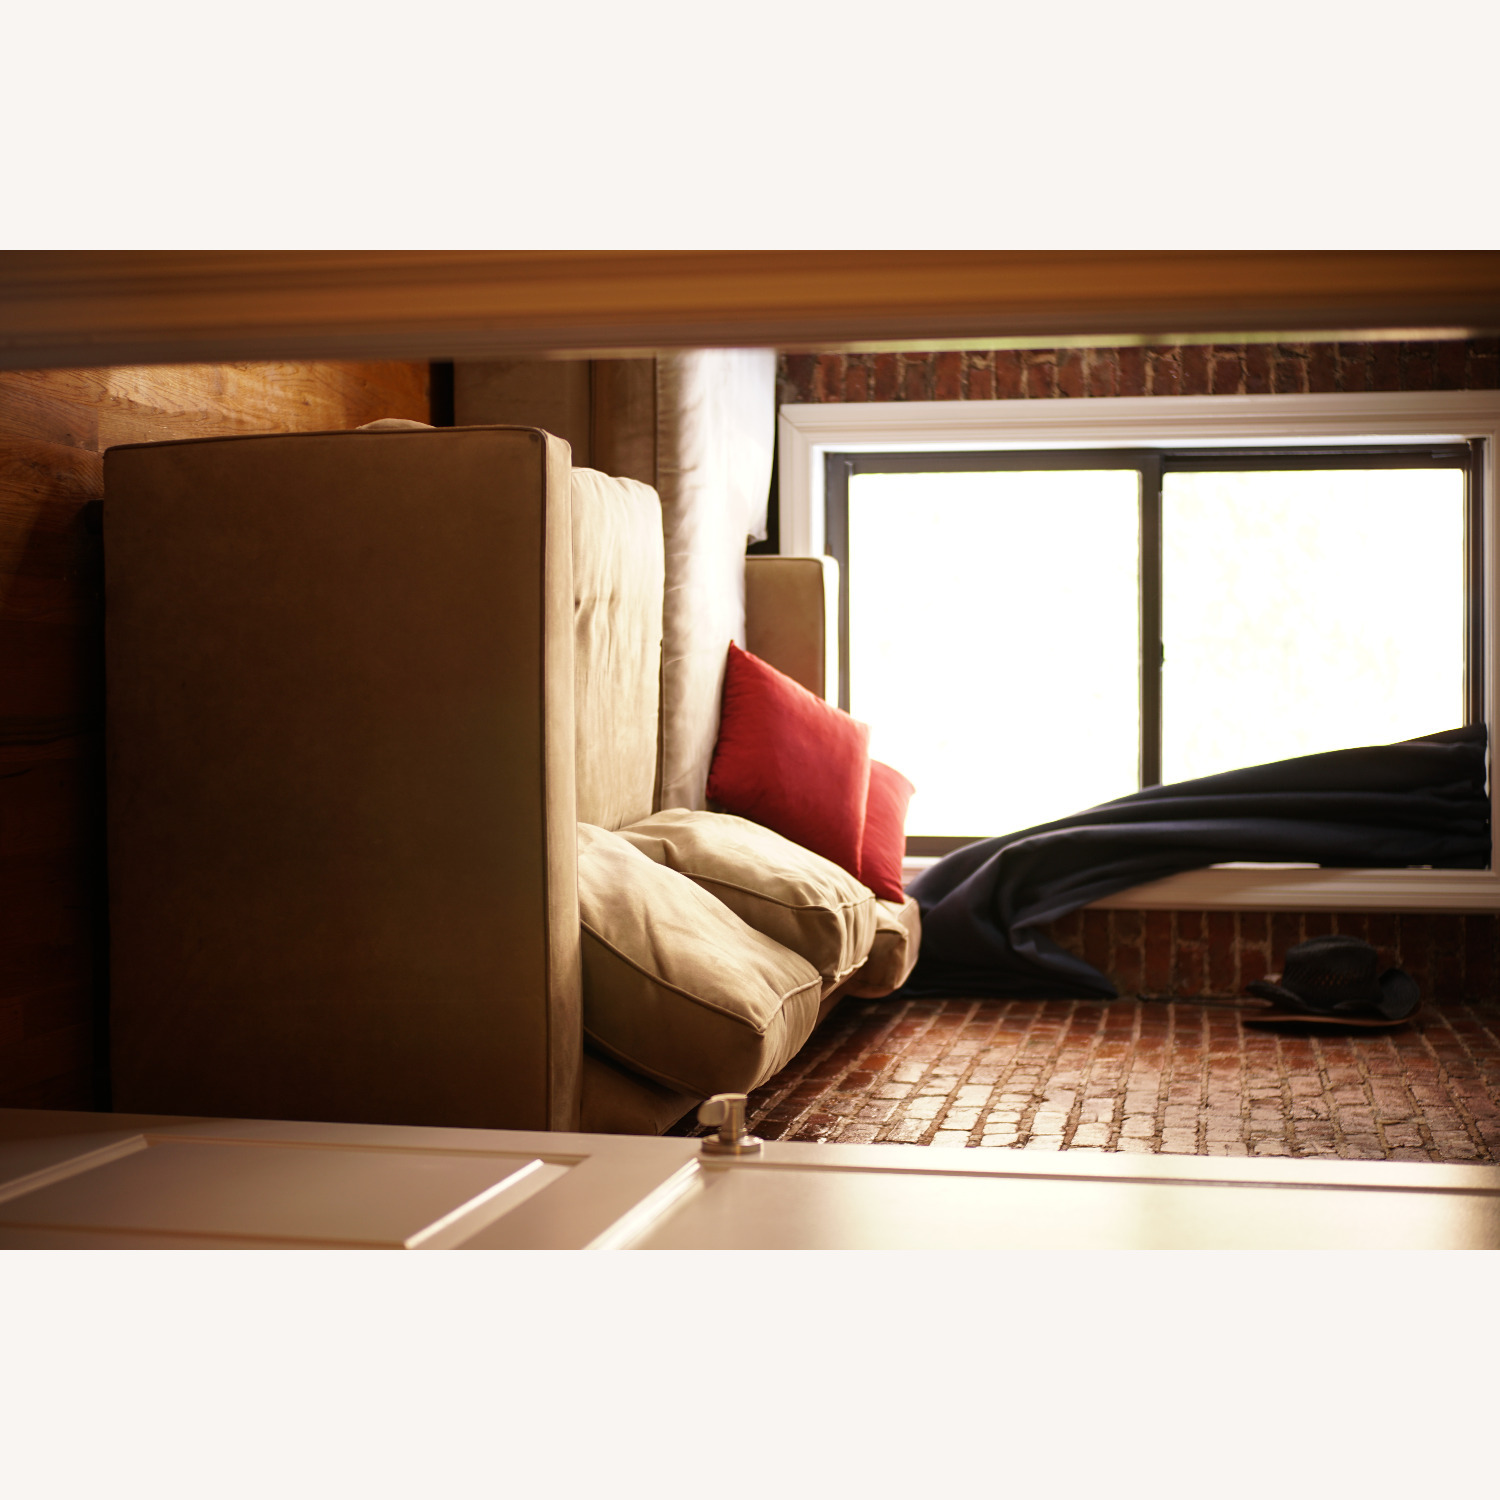 Medium Comfy Couch - image-6